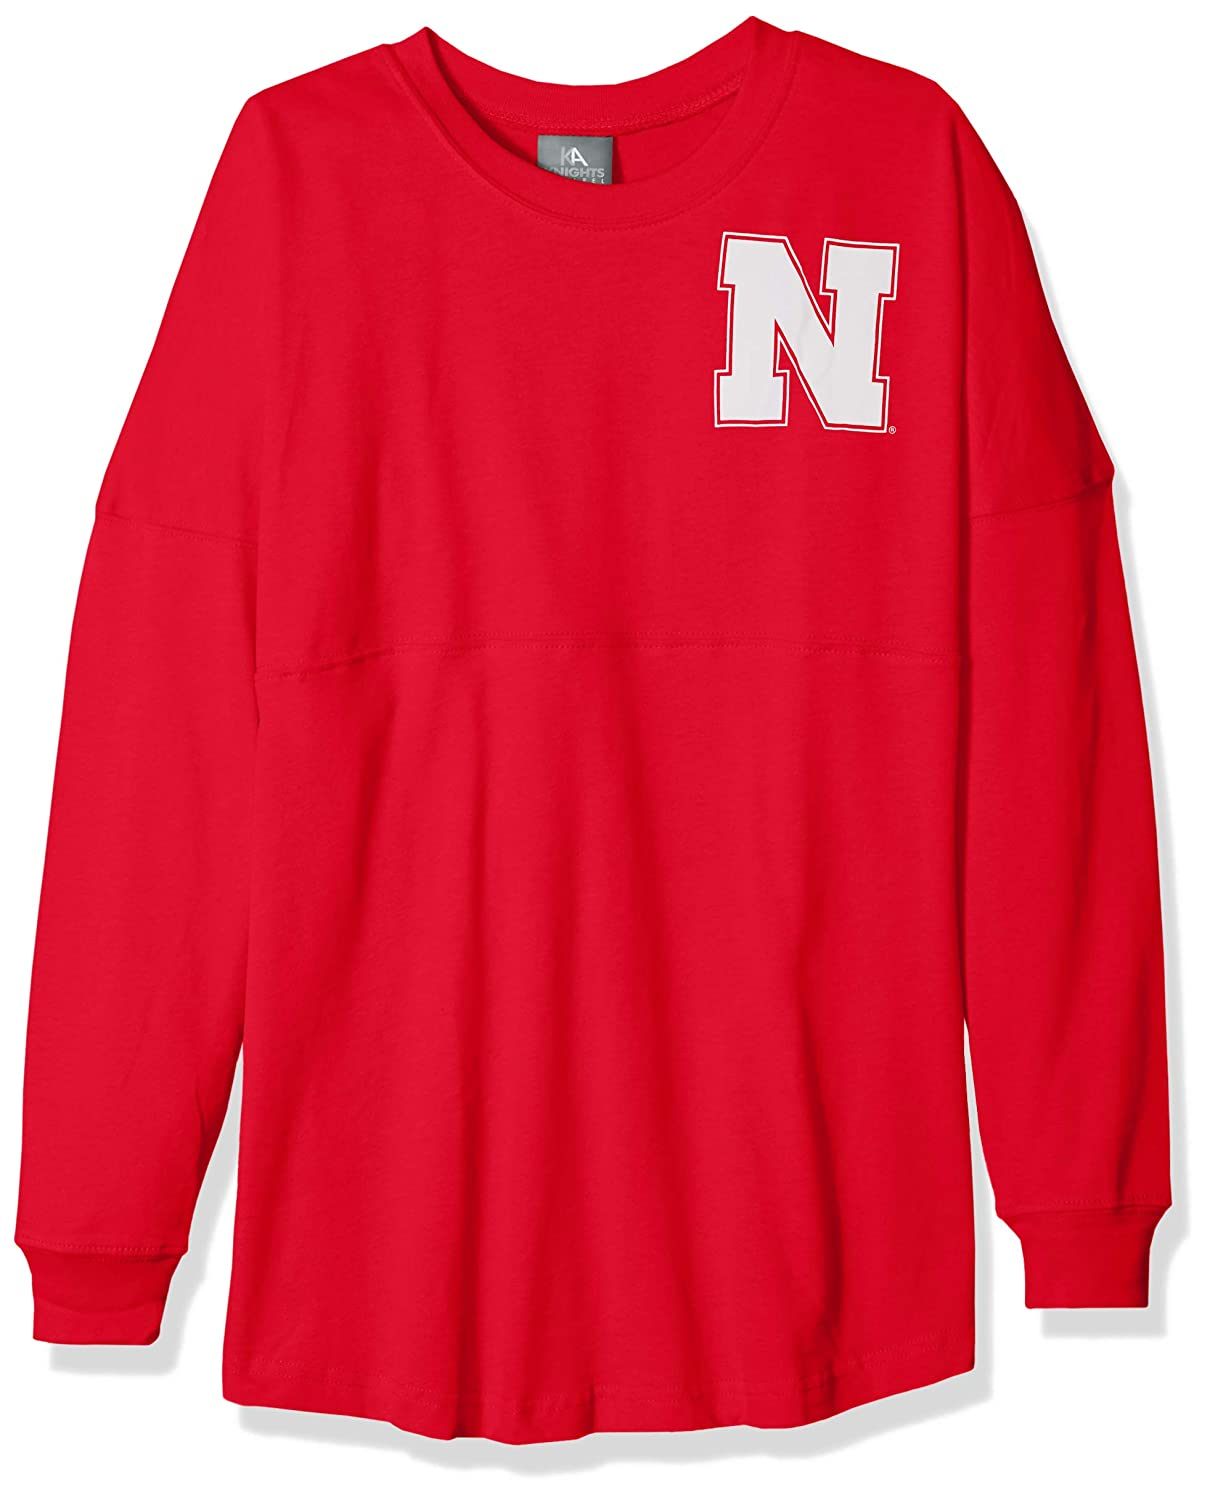 NCAA Nebraska Cornhuskers Womens NCAA Womens Long Sleeve Mascot Style Teeknights Apparel NCAA Womens Long Sleeve Mascot Style Tee Large Athletic Red